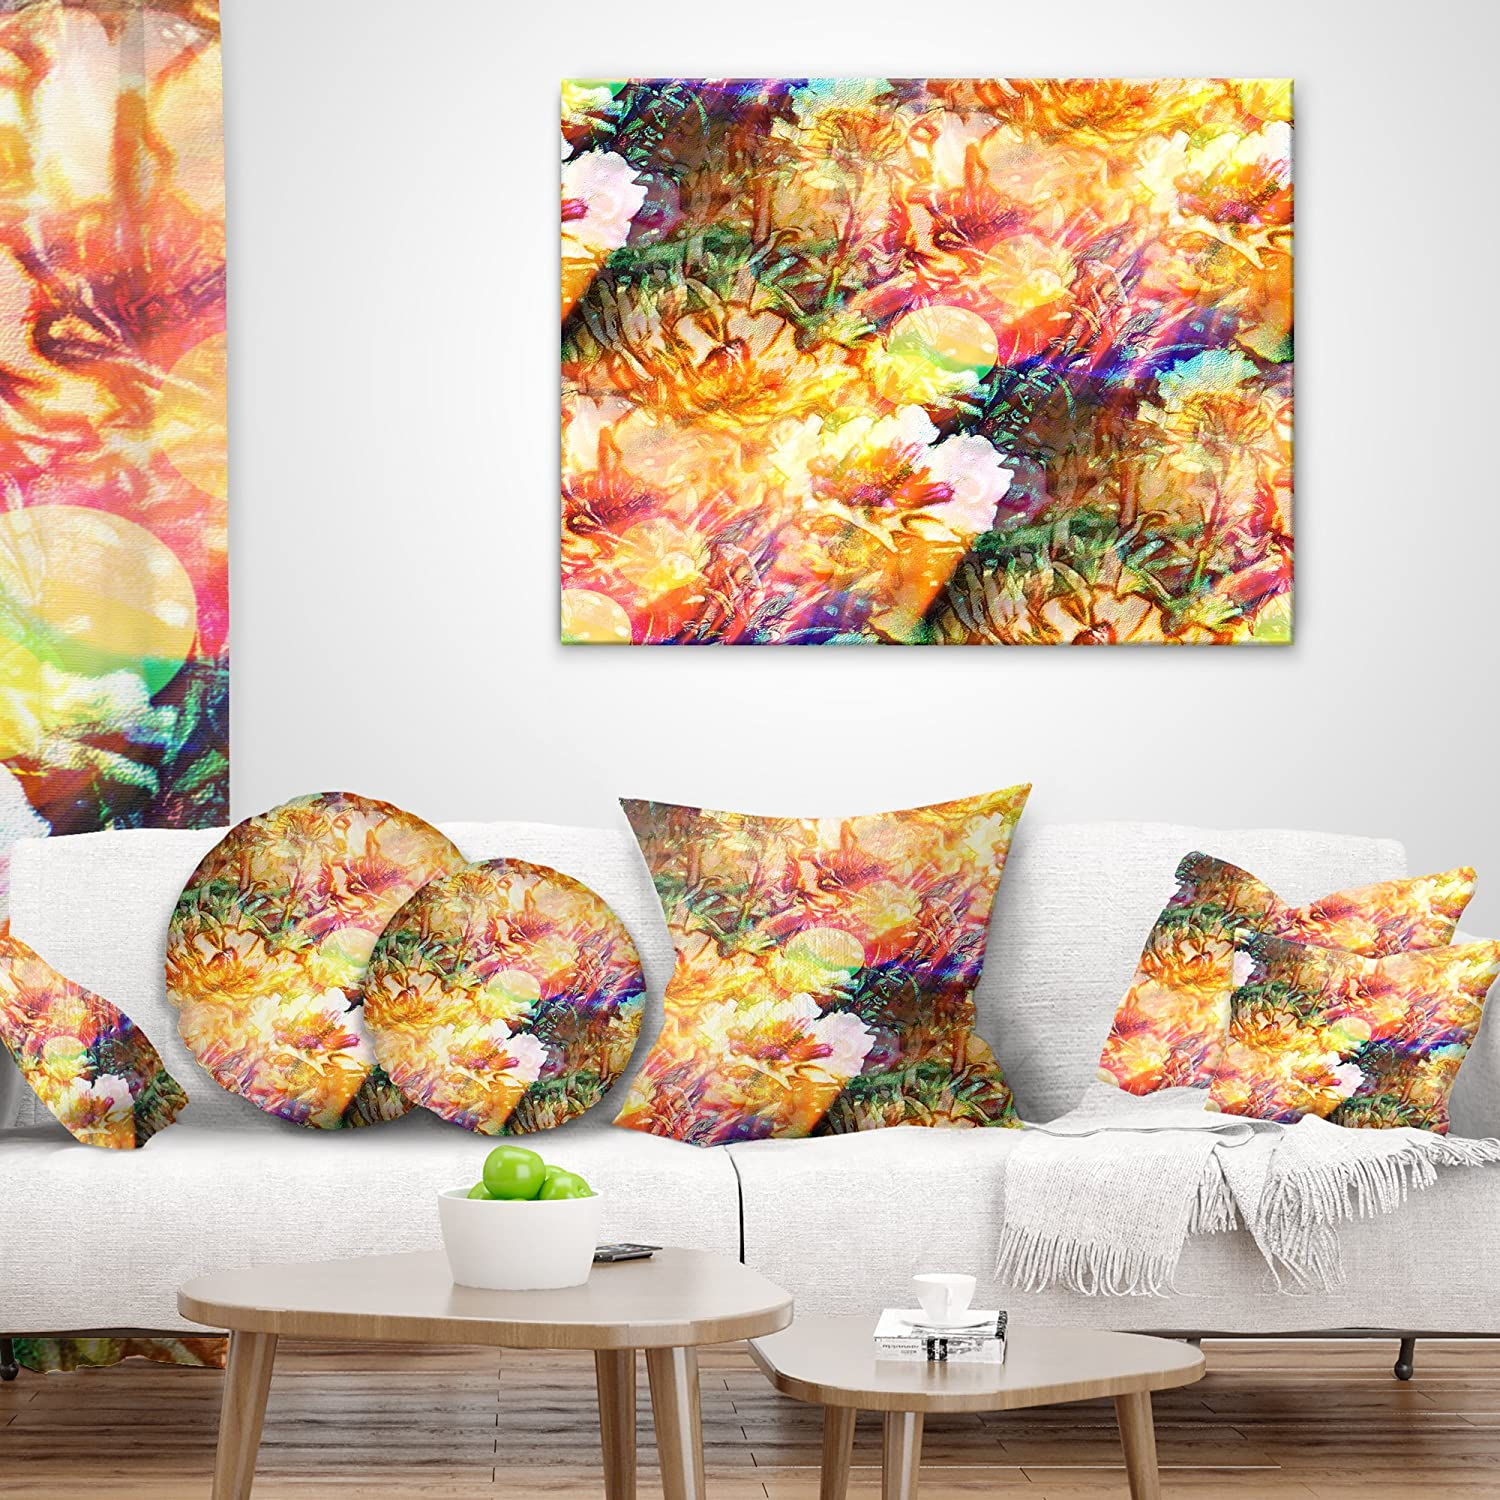 in x 16 in Designart Bokeh Flowers Seamless Floral Throw Pillow 16 in